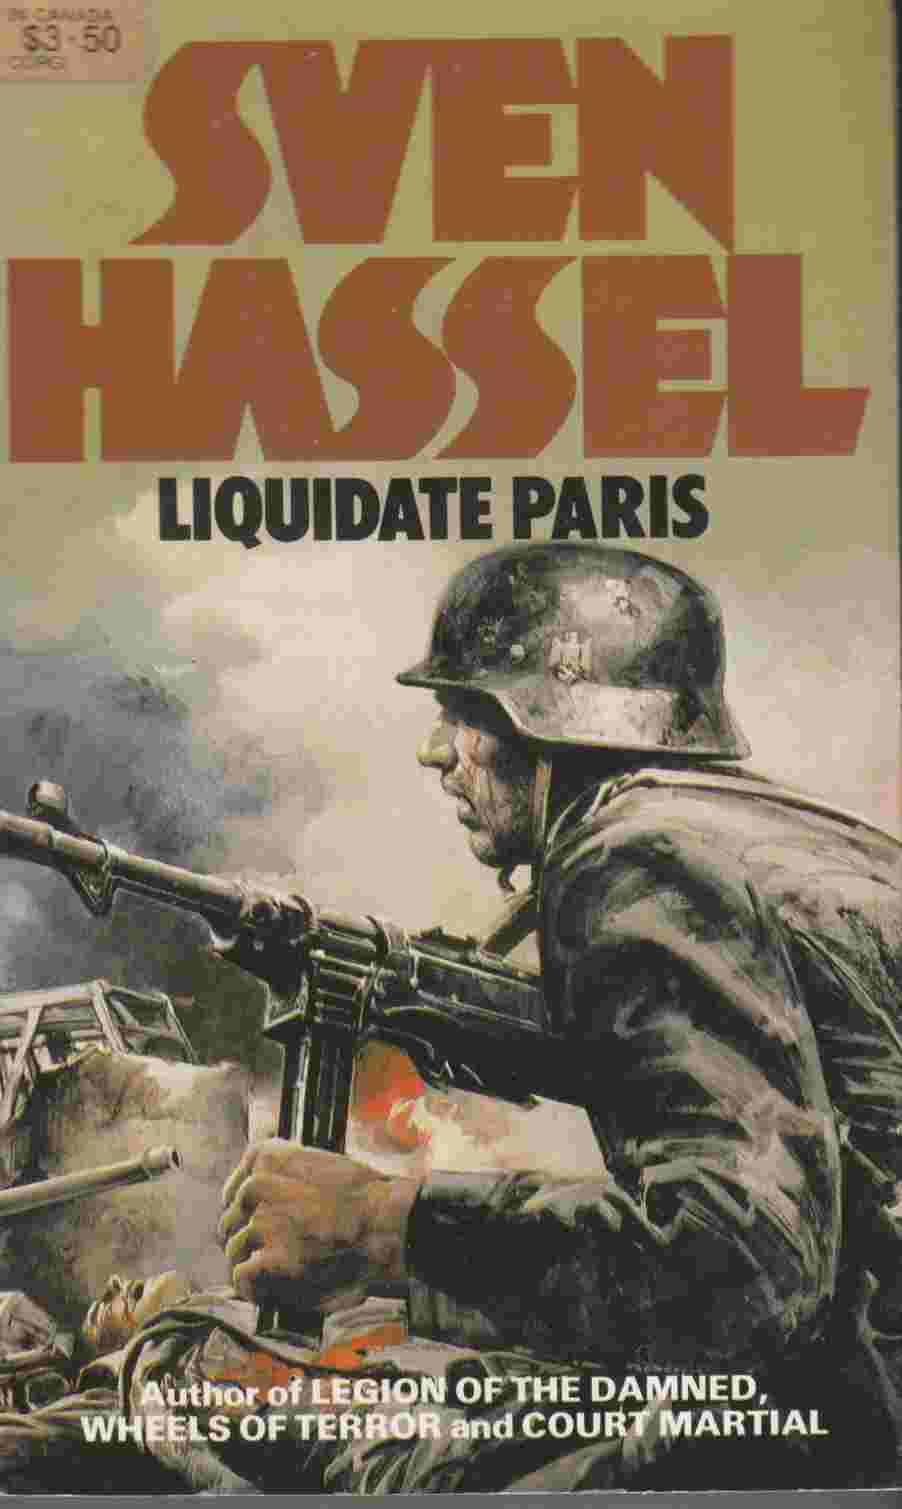 sven hassel books   Google Search   Sven Hassel   Pinterest sven hassel books   Google Search